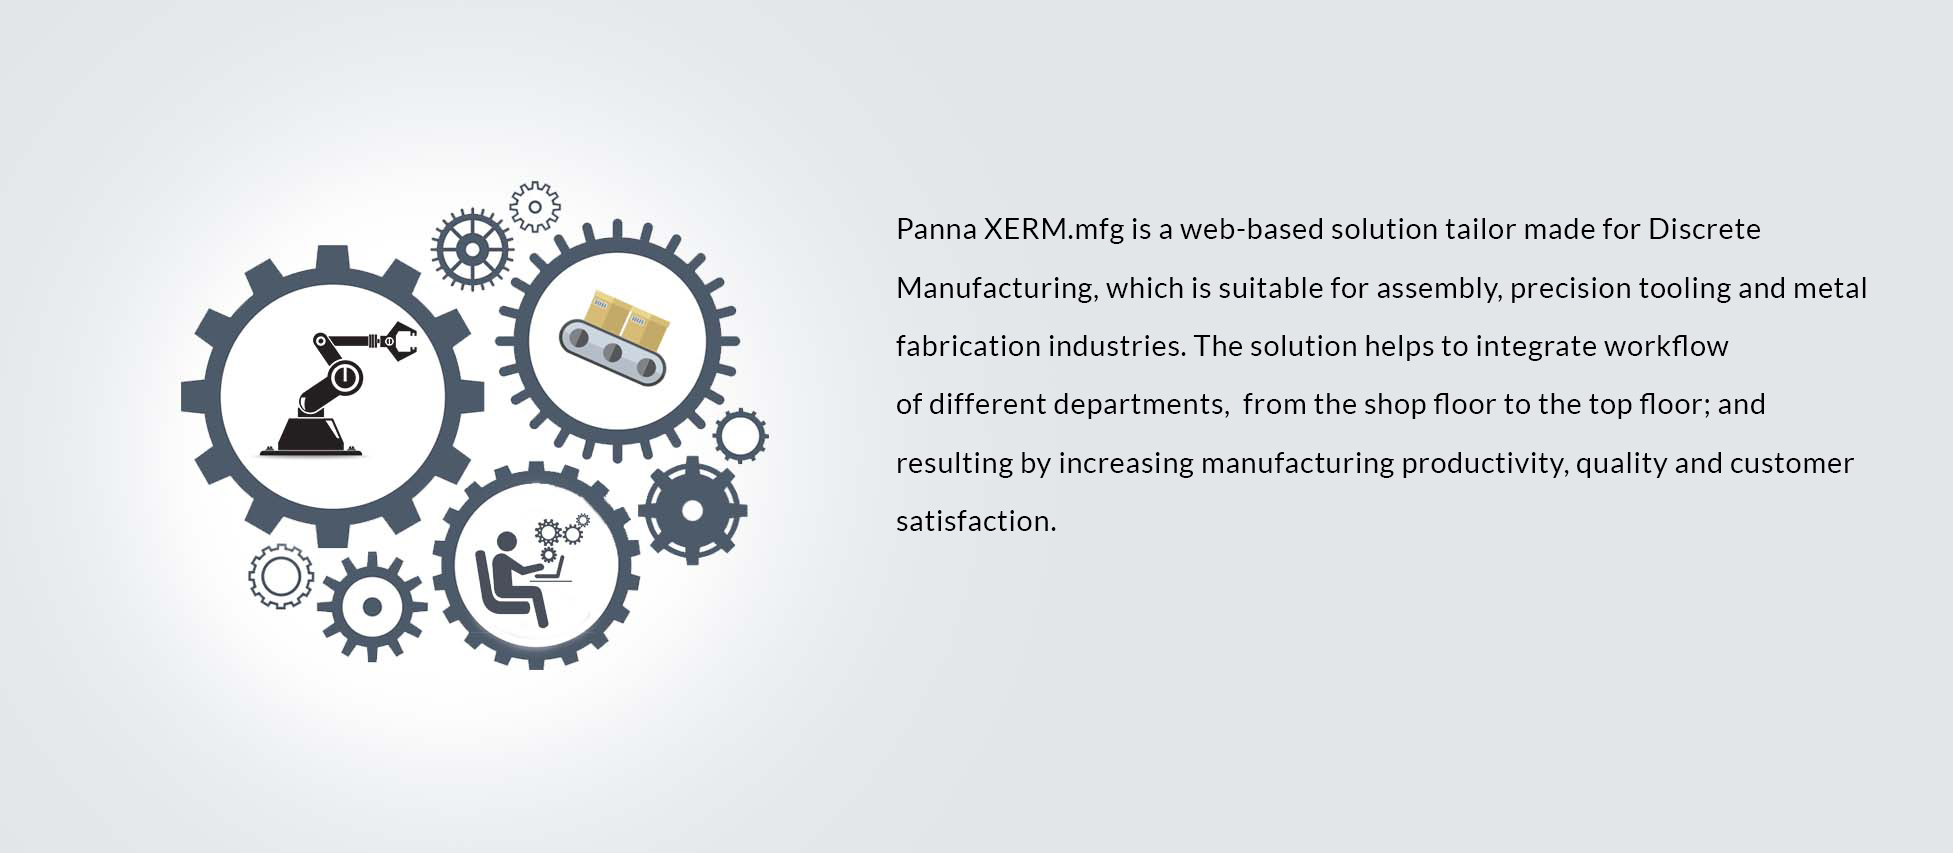 Panna XERM.mfg is a web-based solution tailor made for Discrete Manufacturing, which is suitable for assembly, precision tooling and metal fabrication industries. The solution helps to integrate workflow 